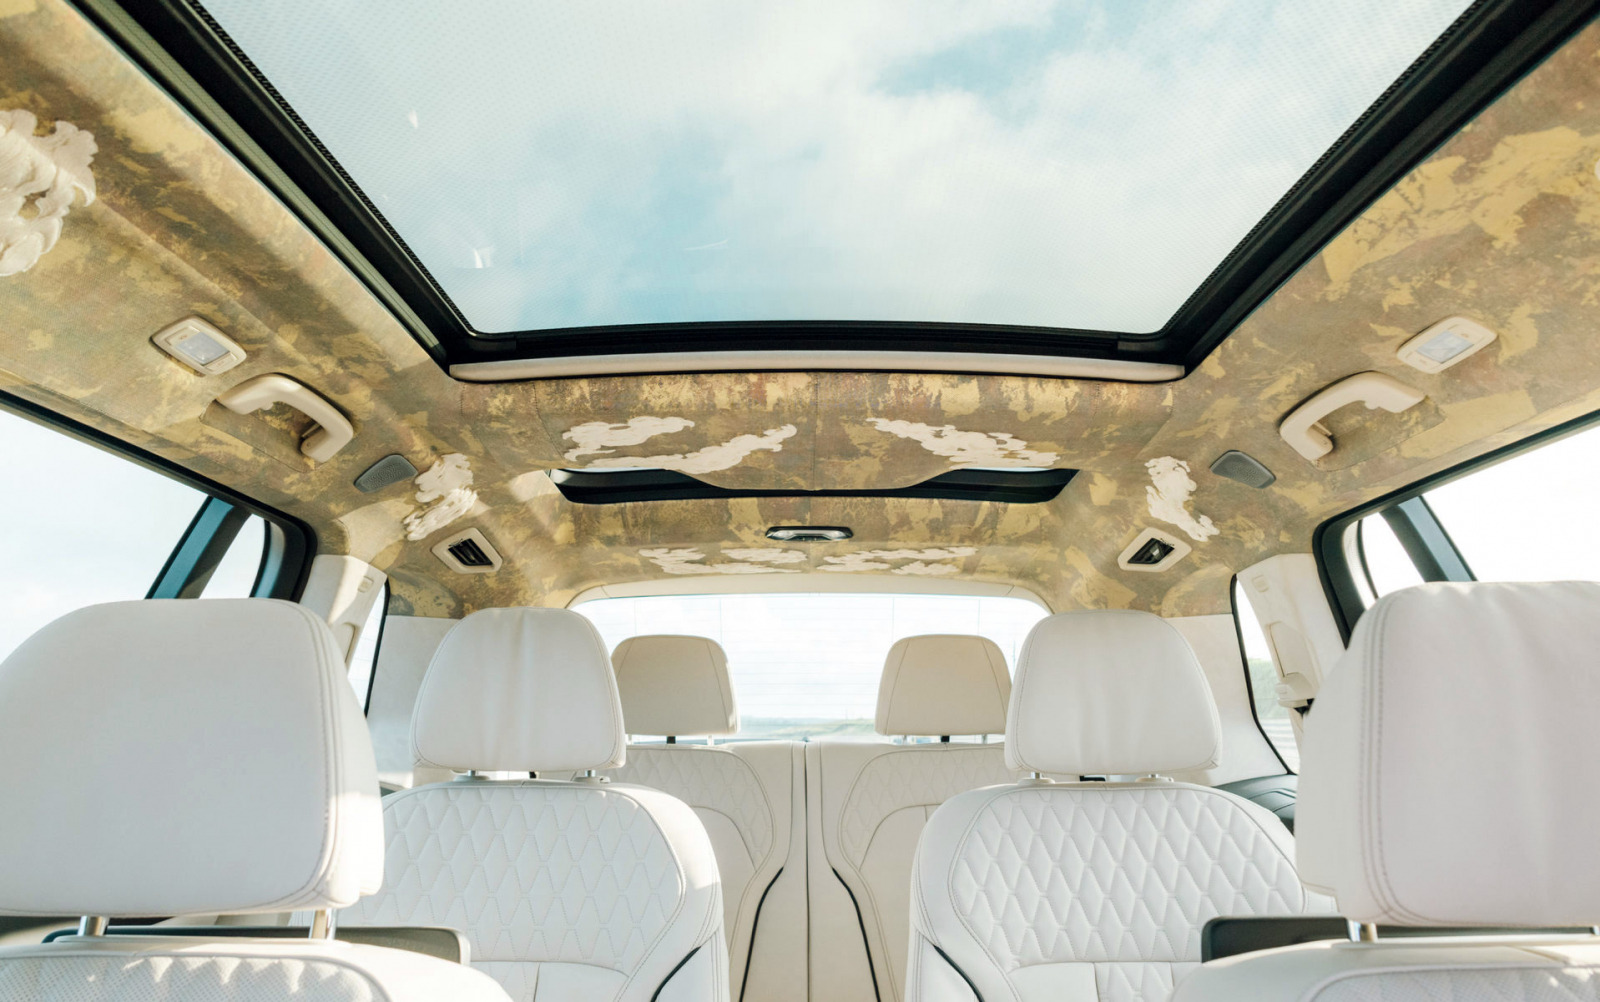 BMW has unveiled the X7 Nishijin Edition, an exclusive trio of SUVs for Japan sporting a sophisticated shimmering body finish and a traditional Japanese interior trim.